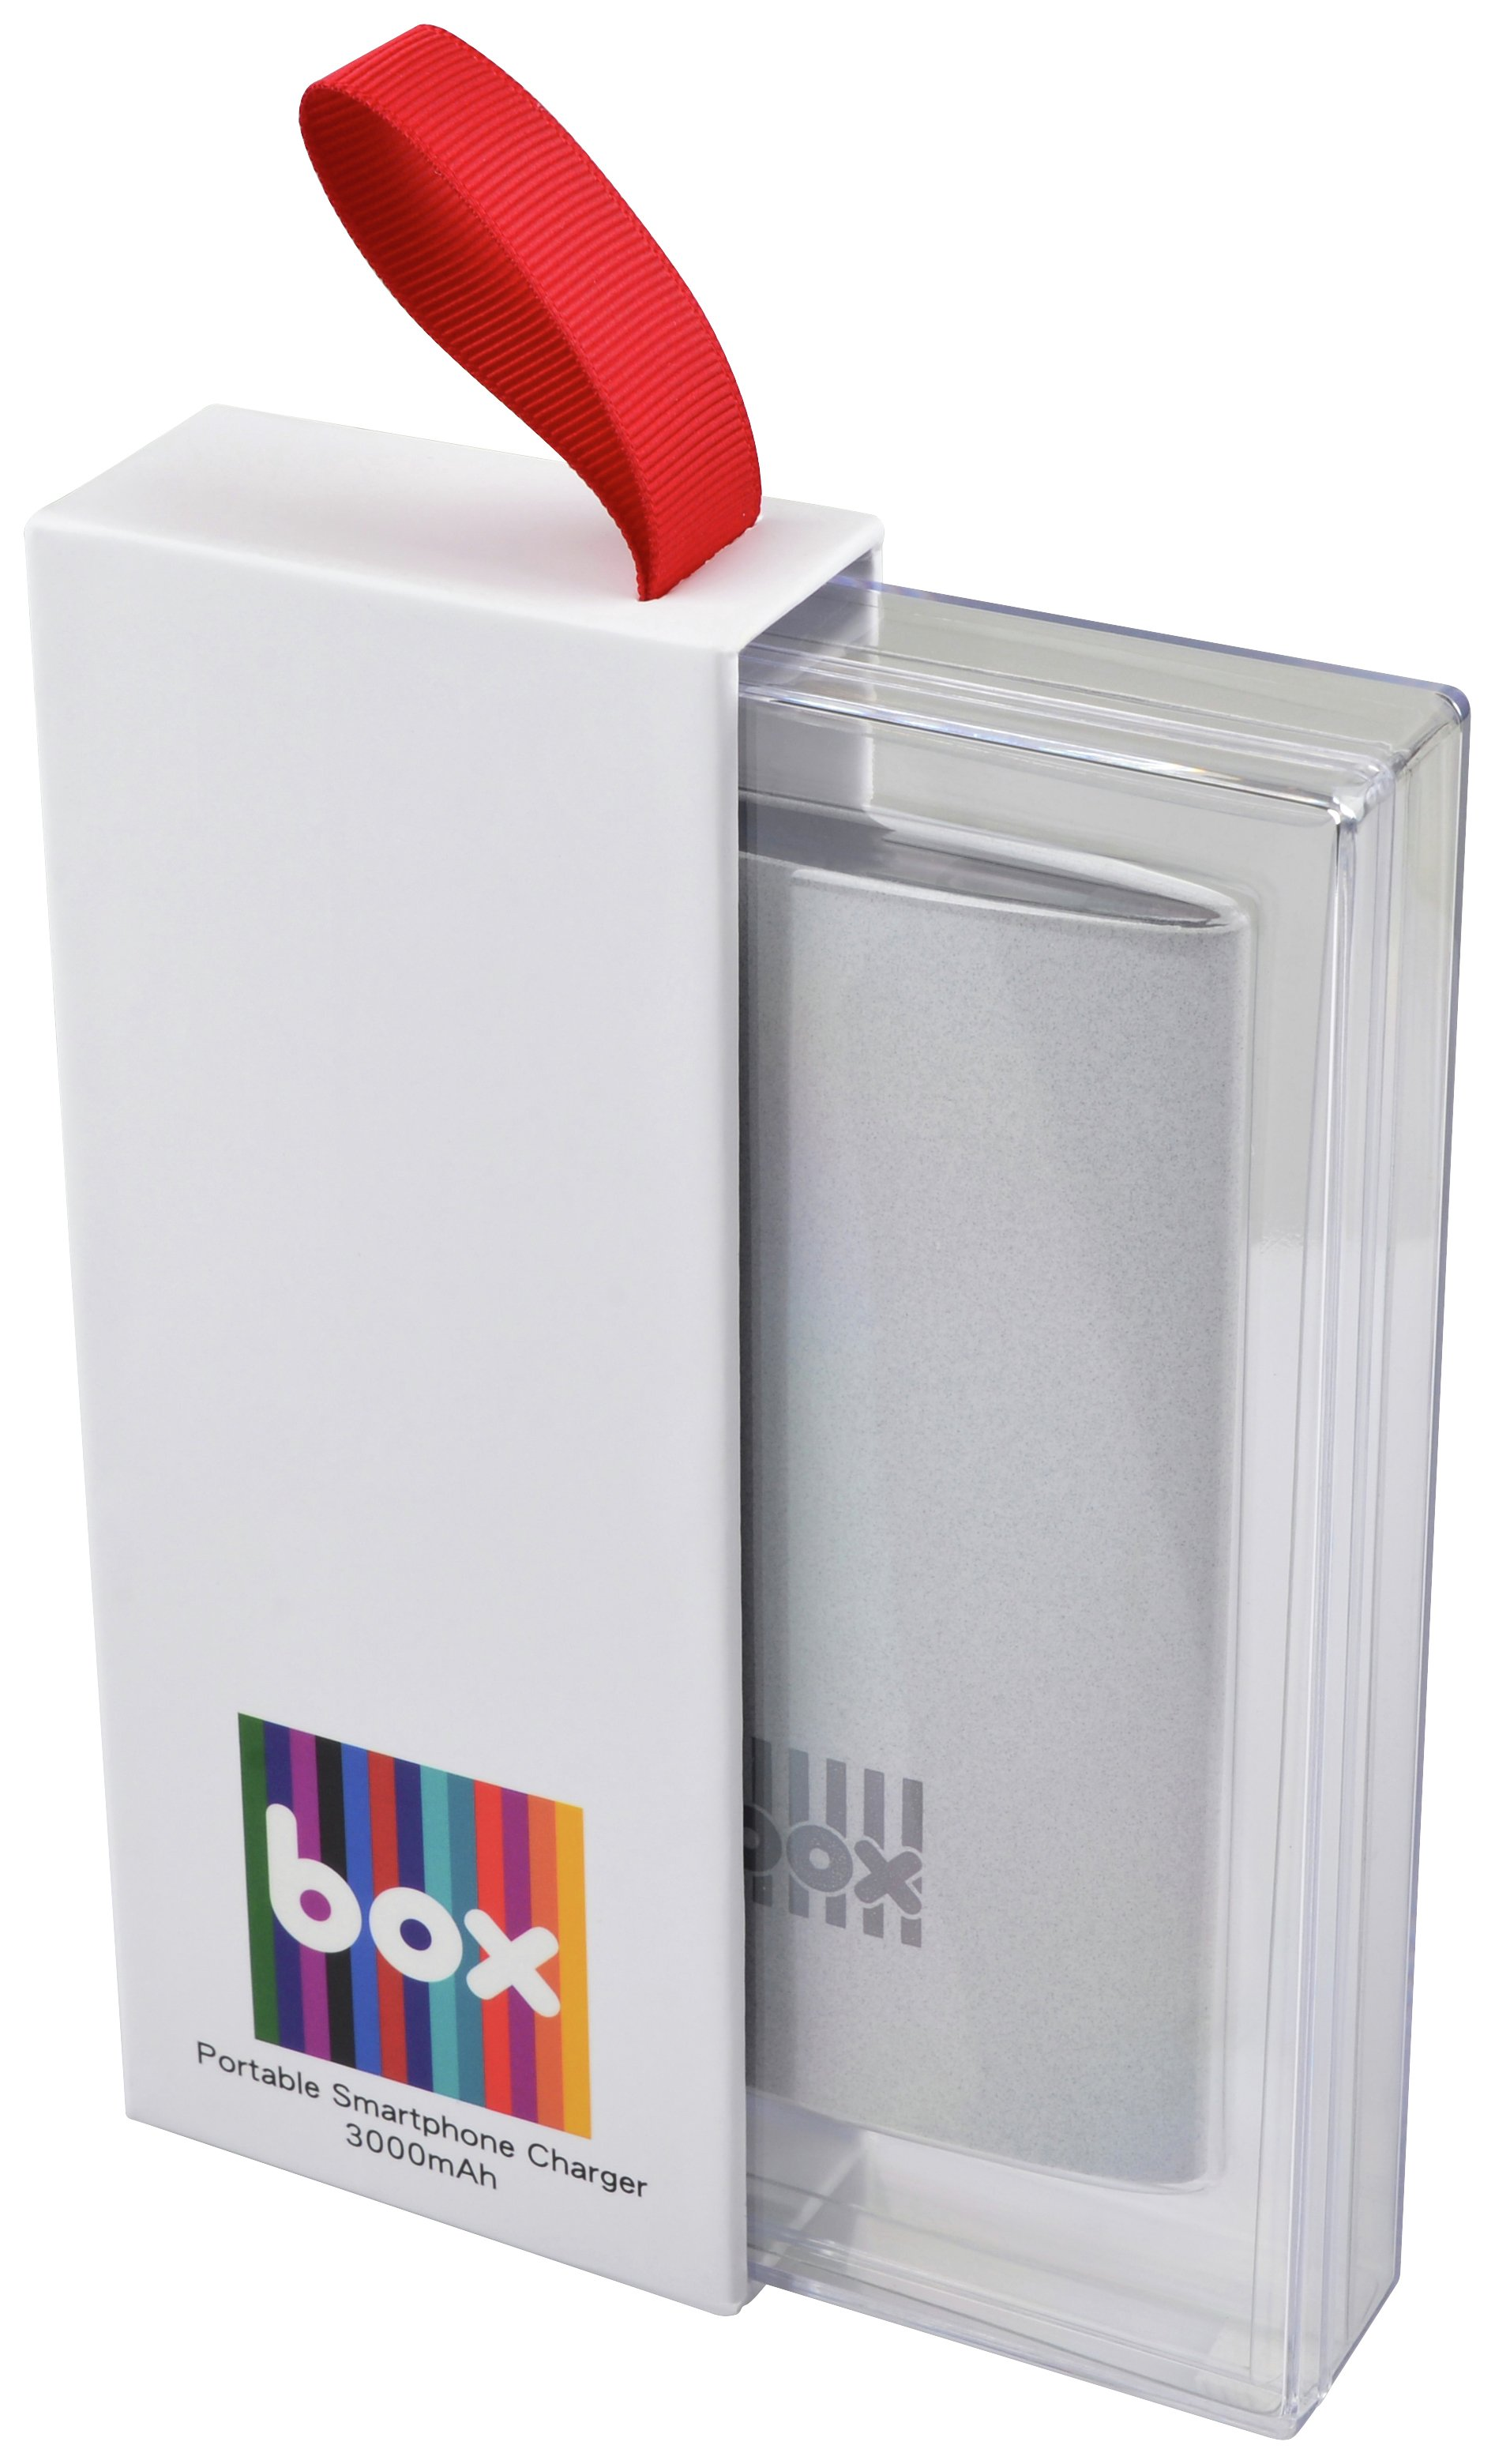 Image of BOX 3000mAh Portable Smartphone Charger - Grey.